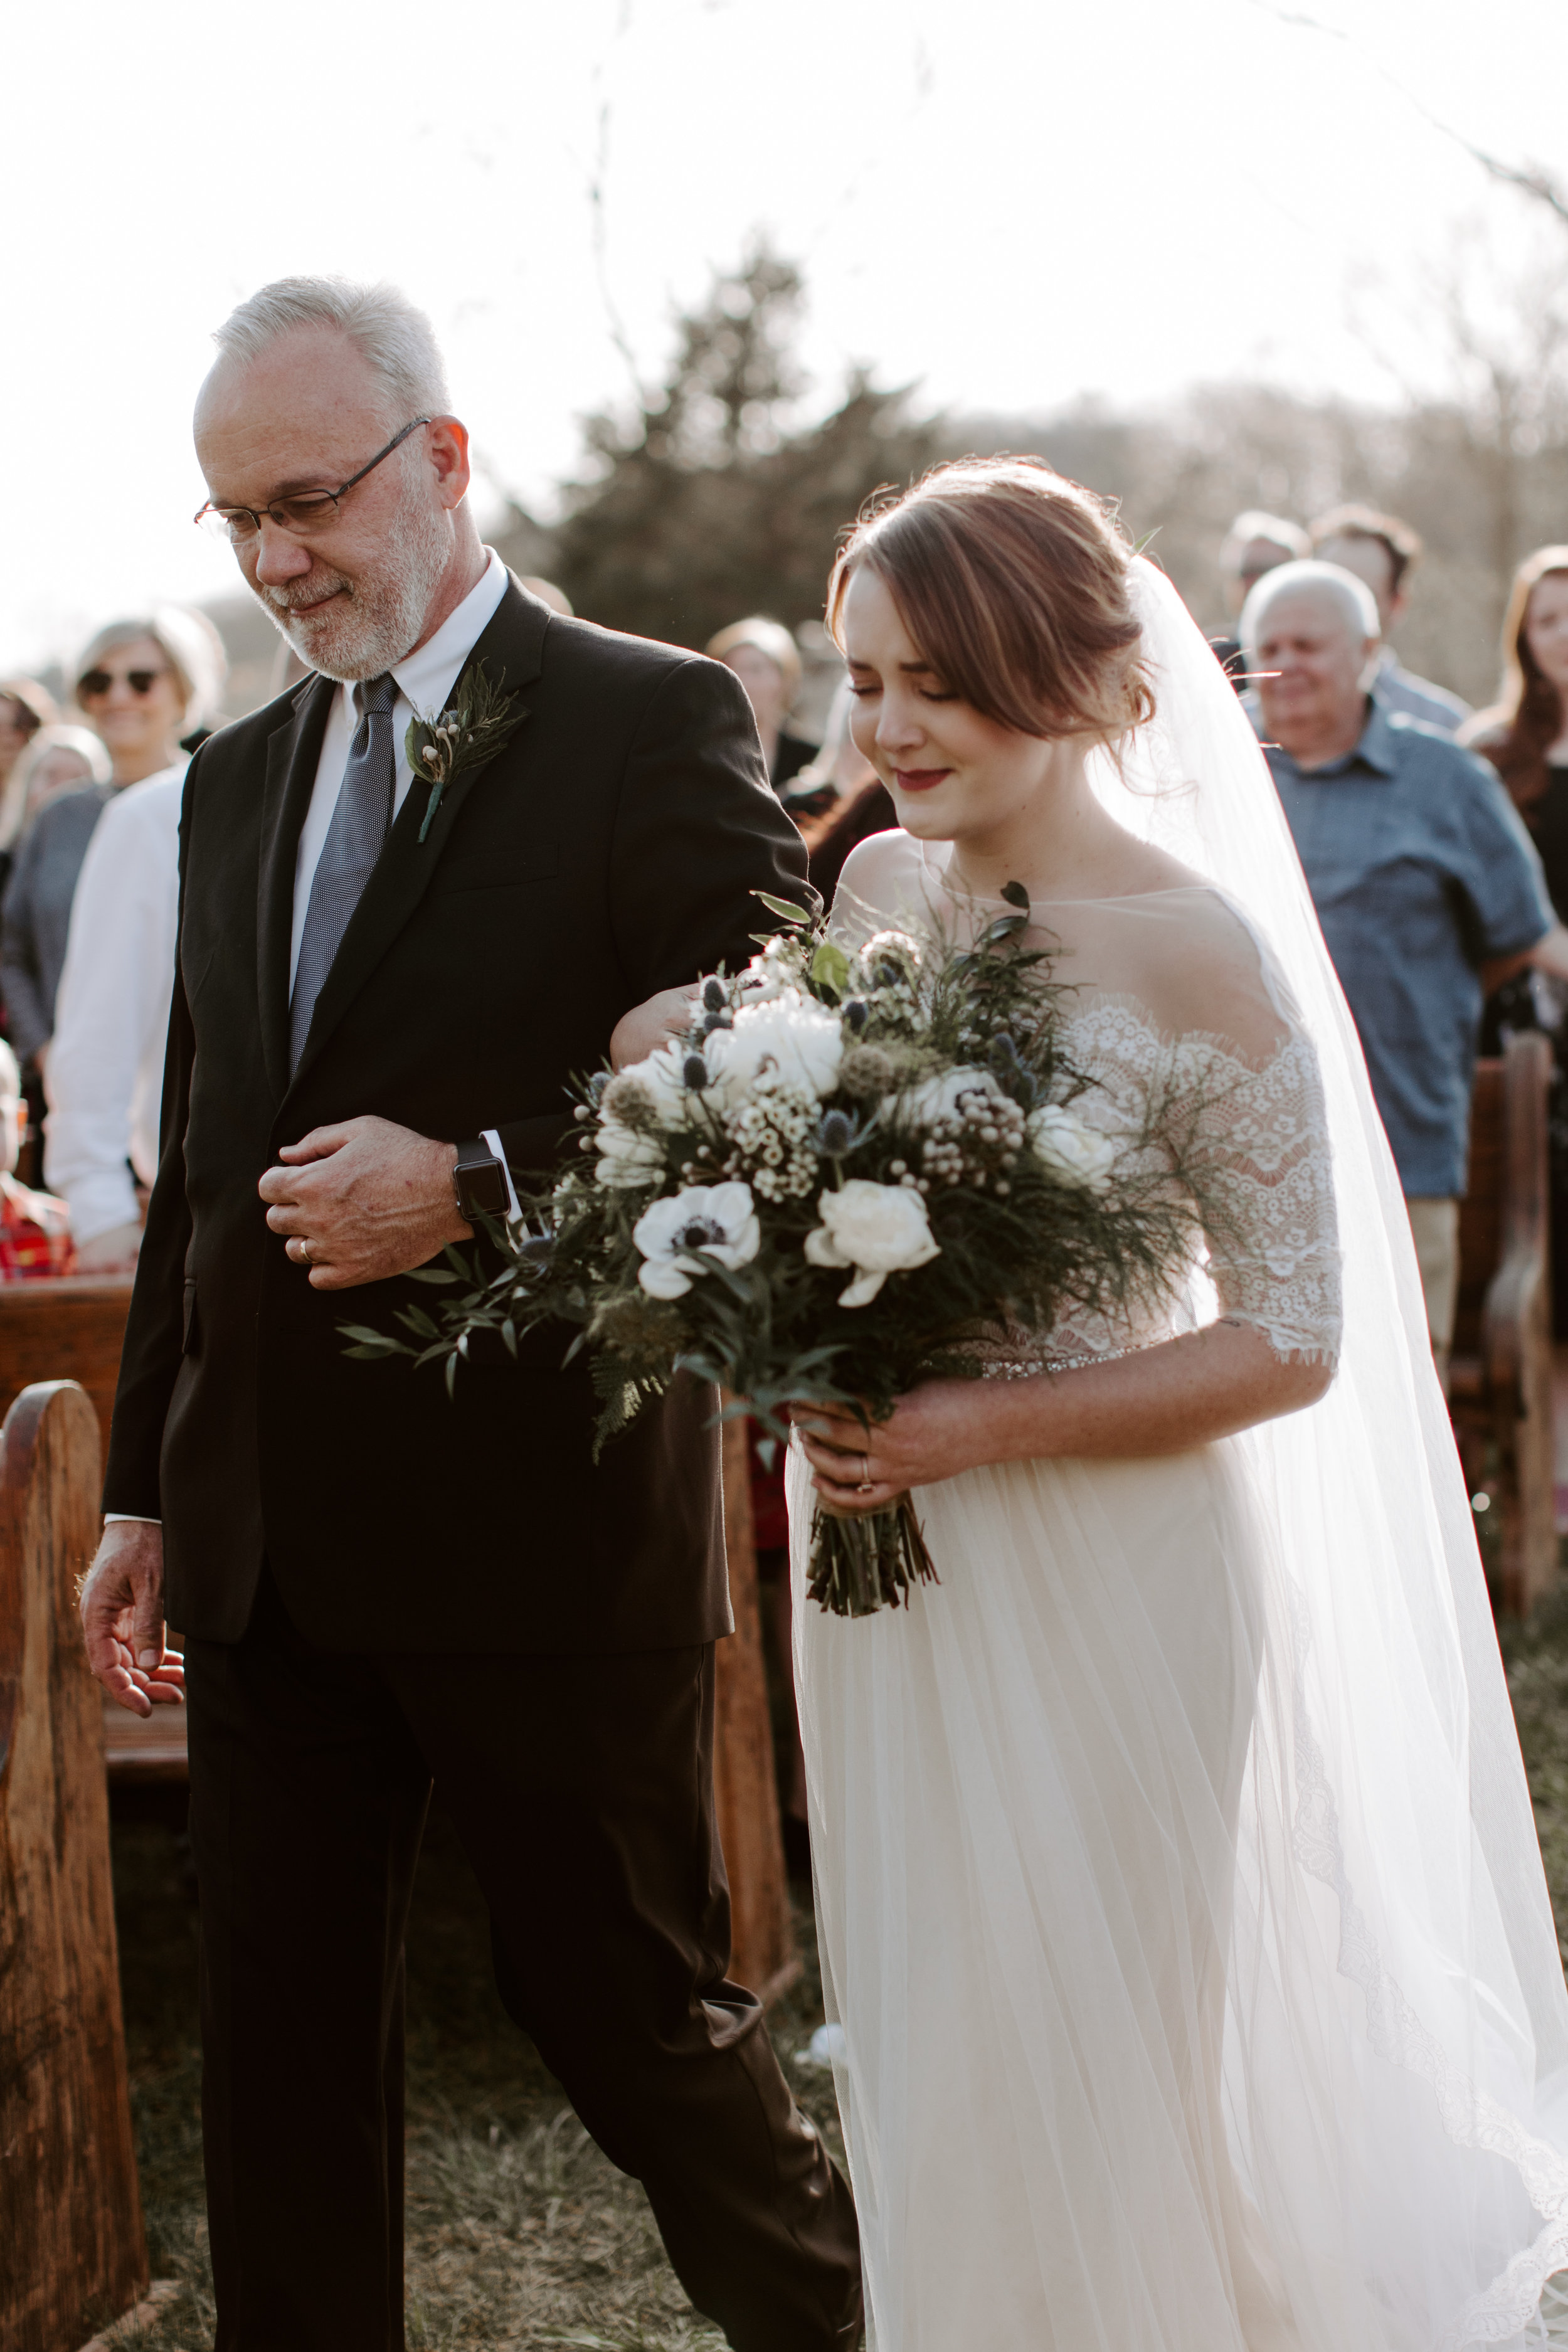 Emotional Ceremony Pictures at Wedding in Nashville, Tennessee